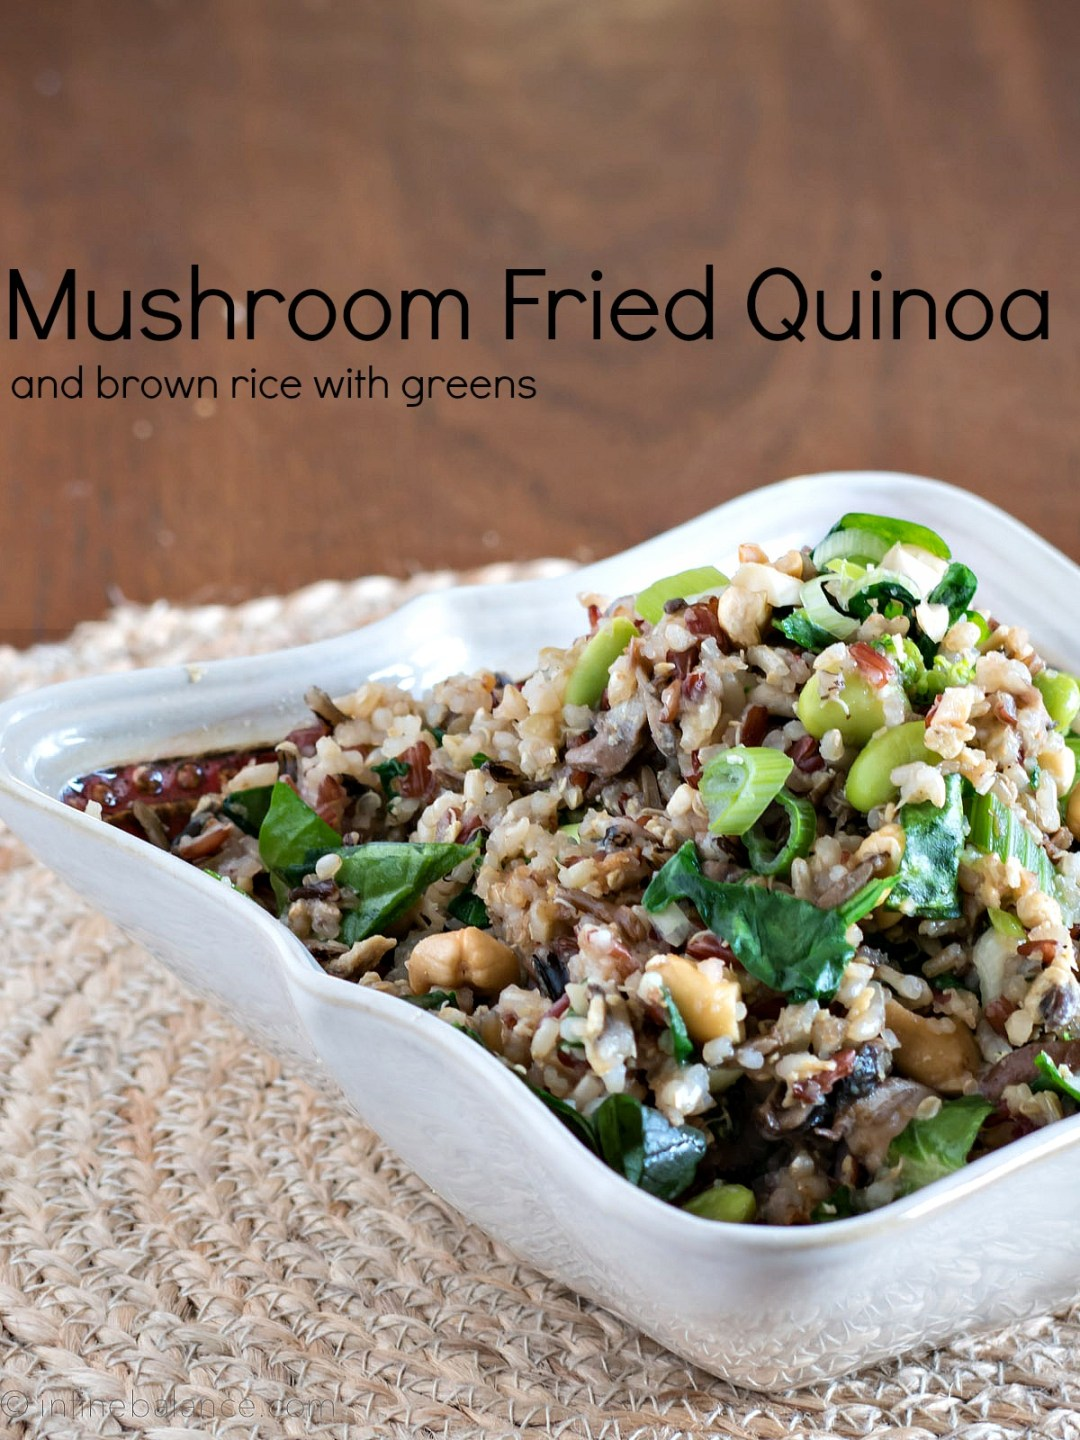 Mushroom Fried Quinoa | www.infinebalance.com #meatlessmondays #recipe